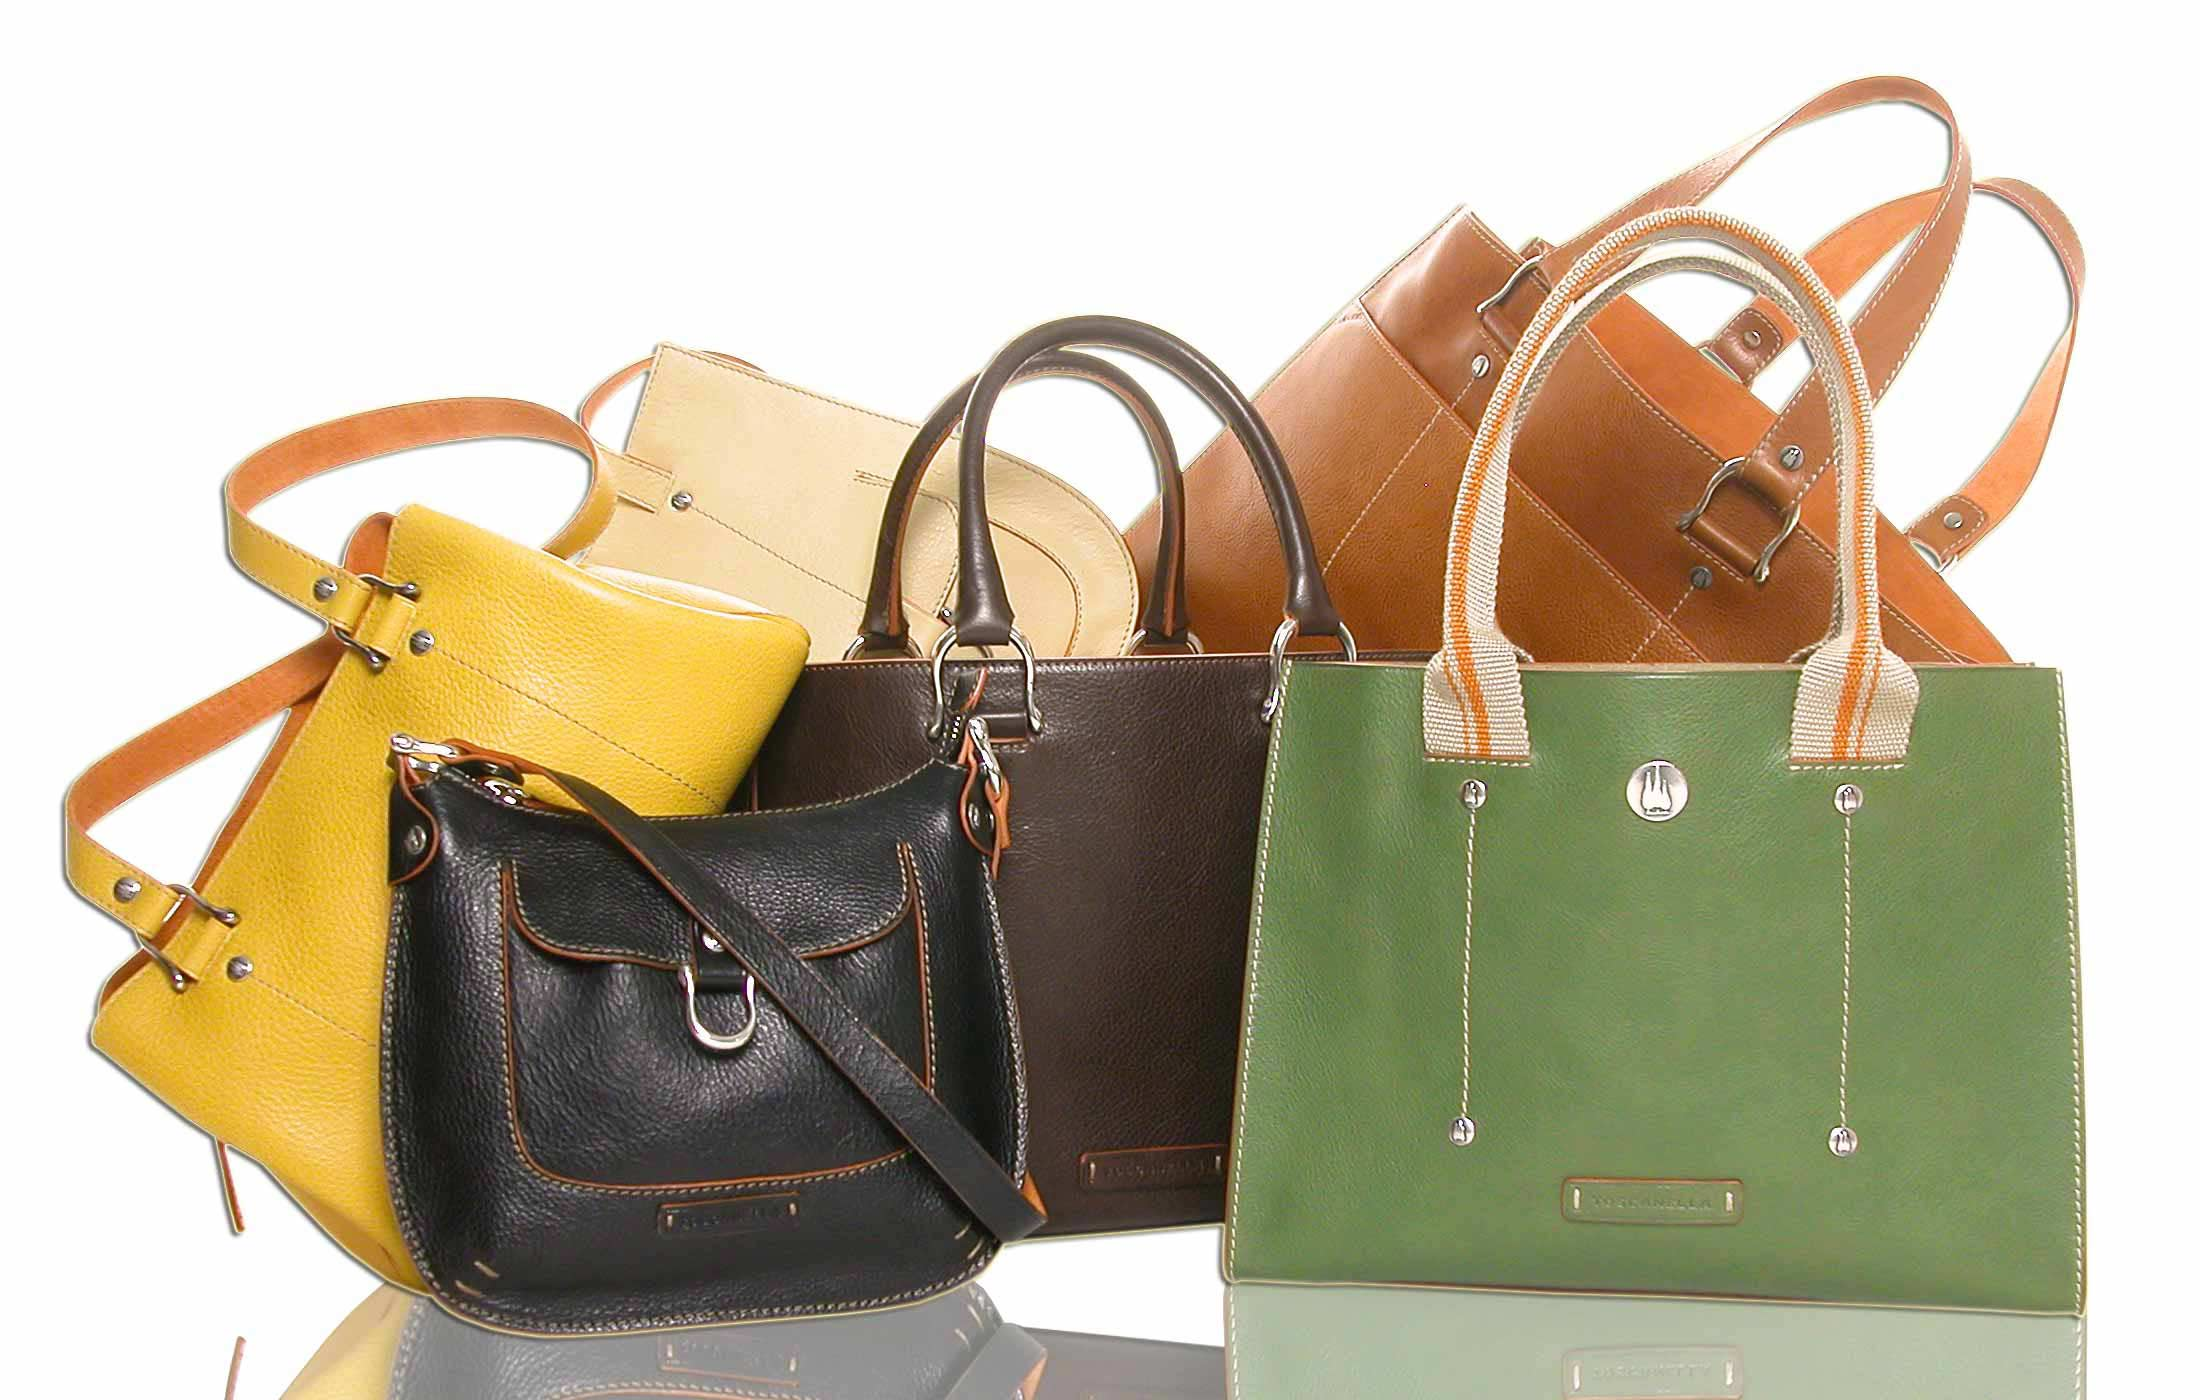 The Toscanella Italian Leather Collection